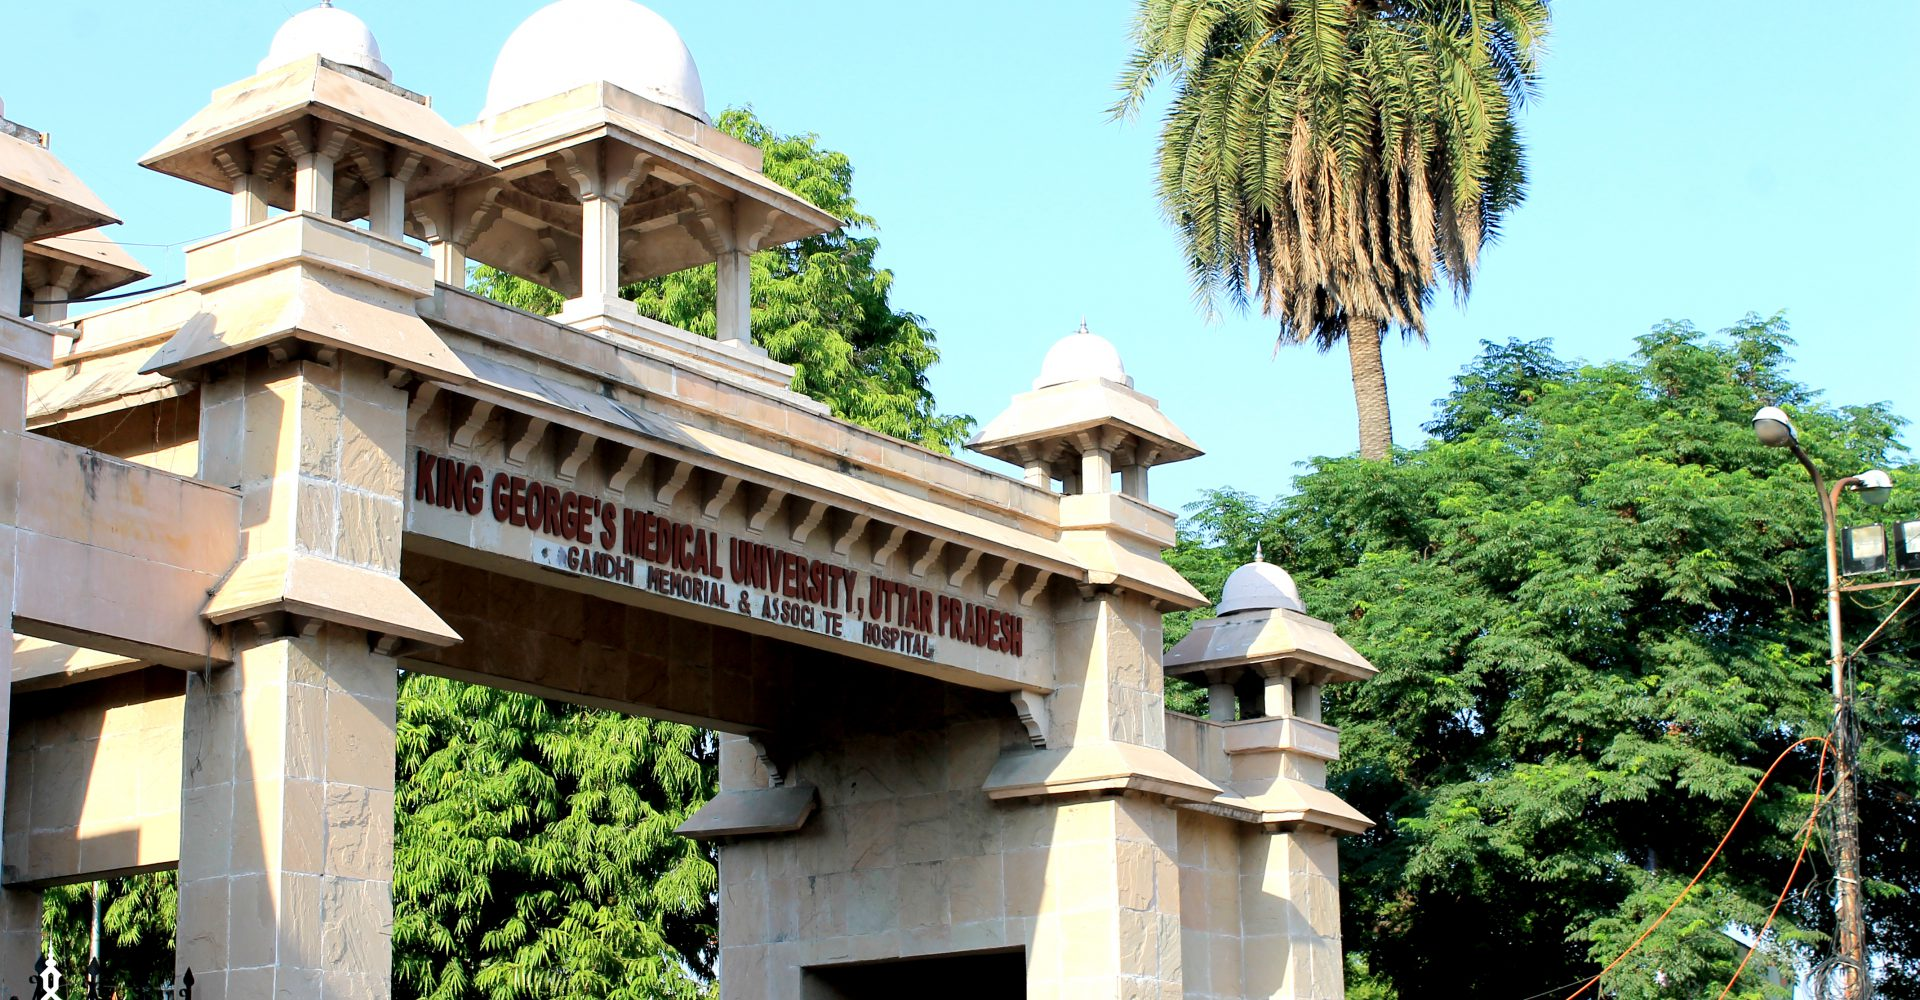 Picture of the main entrance to King George's Medical Universitycampus.